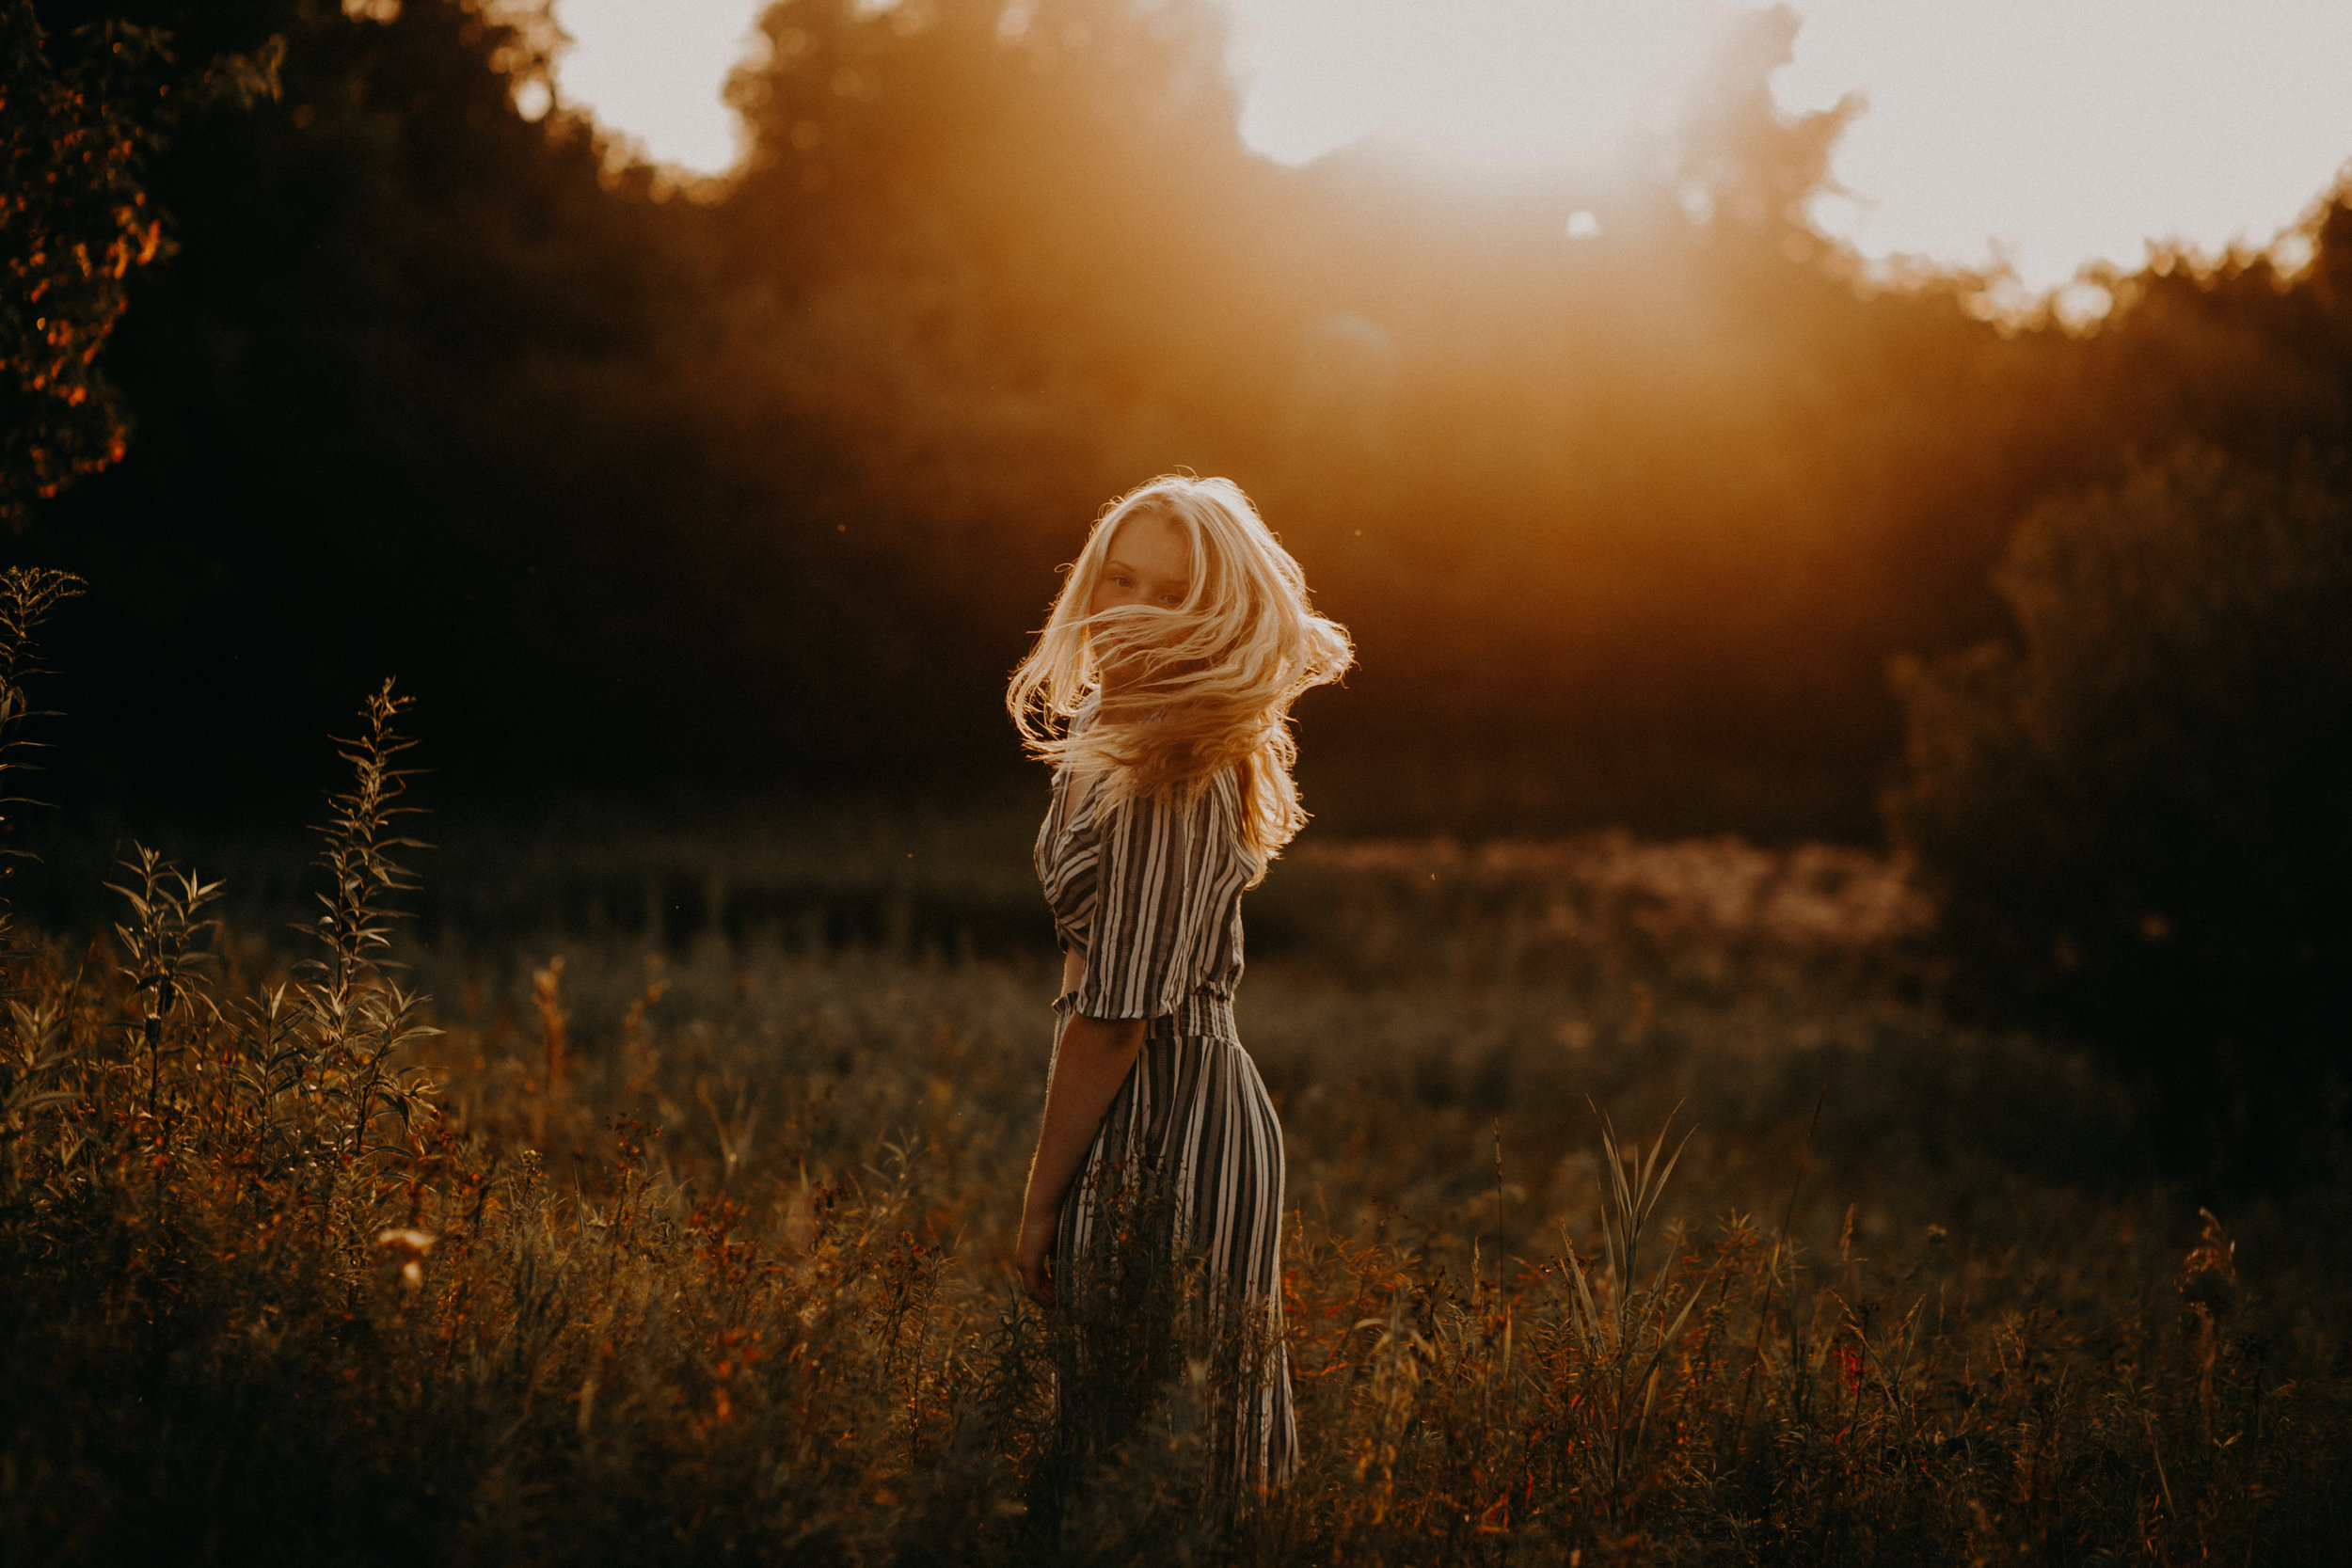 incredible sunset with golden light in a field while high school senior from Spooner WI whips her hair to look at photography Andrea Wagner